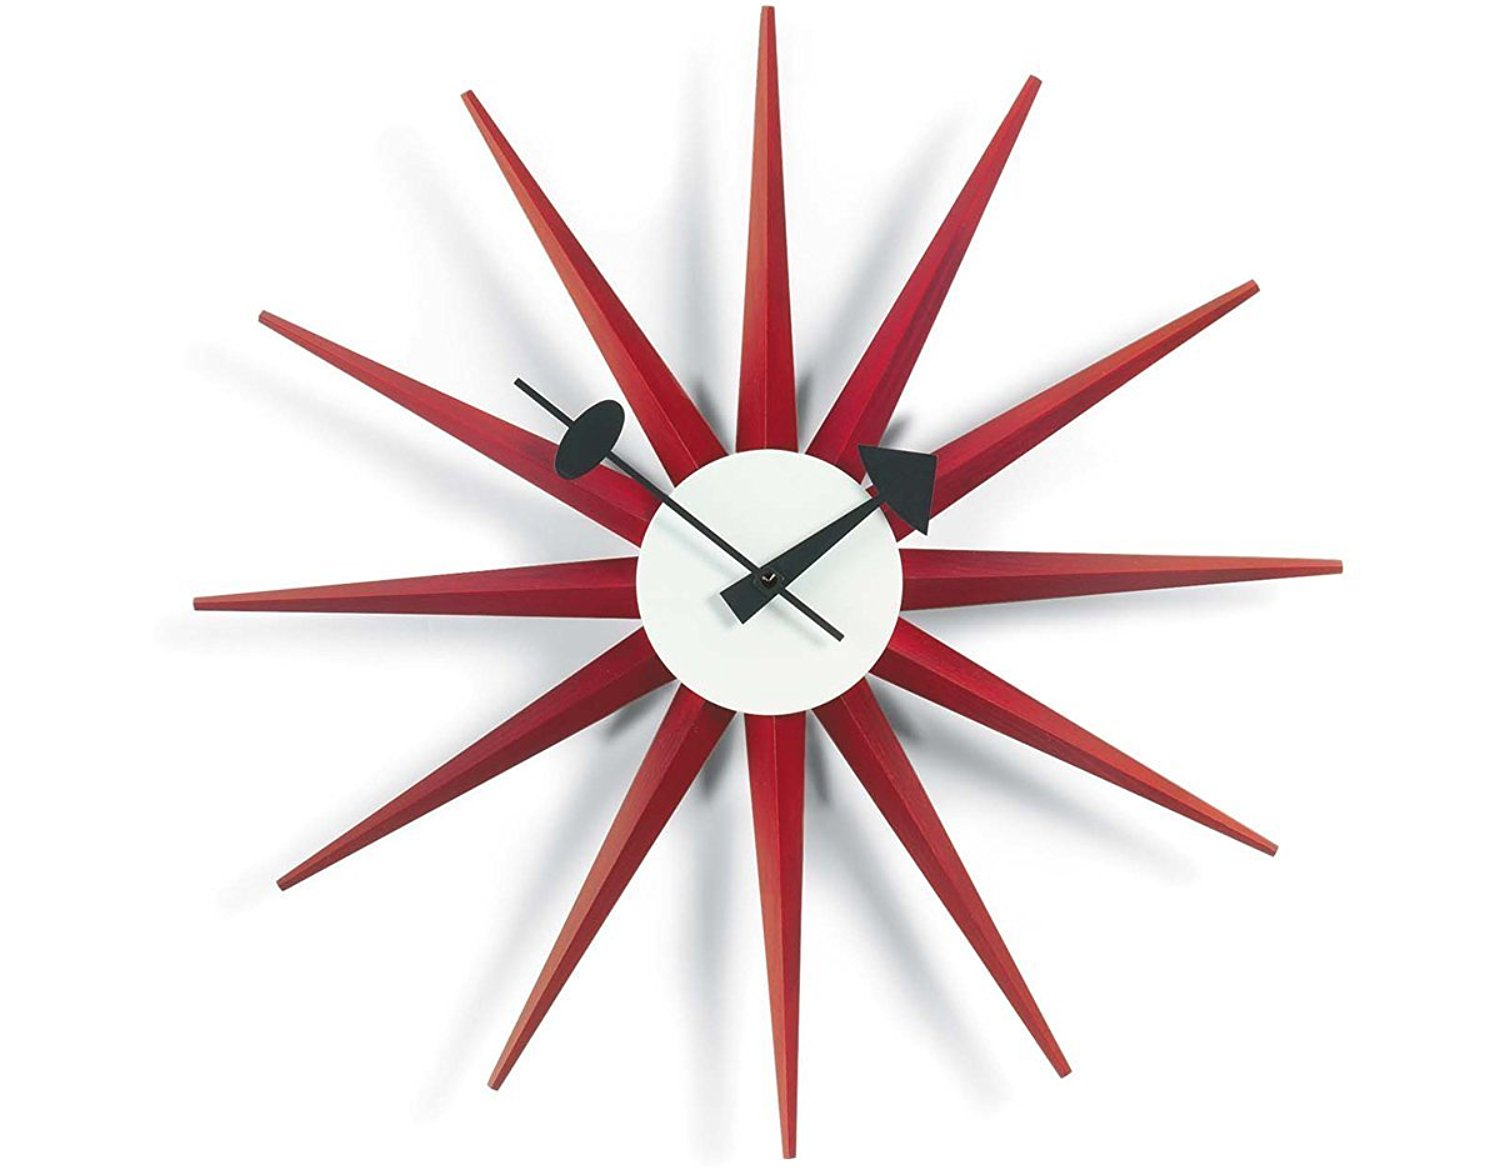 Vitra Sunburst Clock by George Nelson